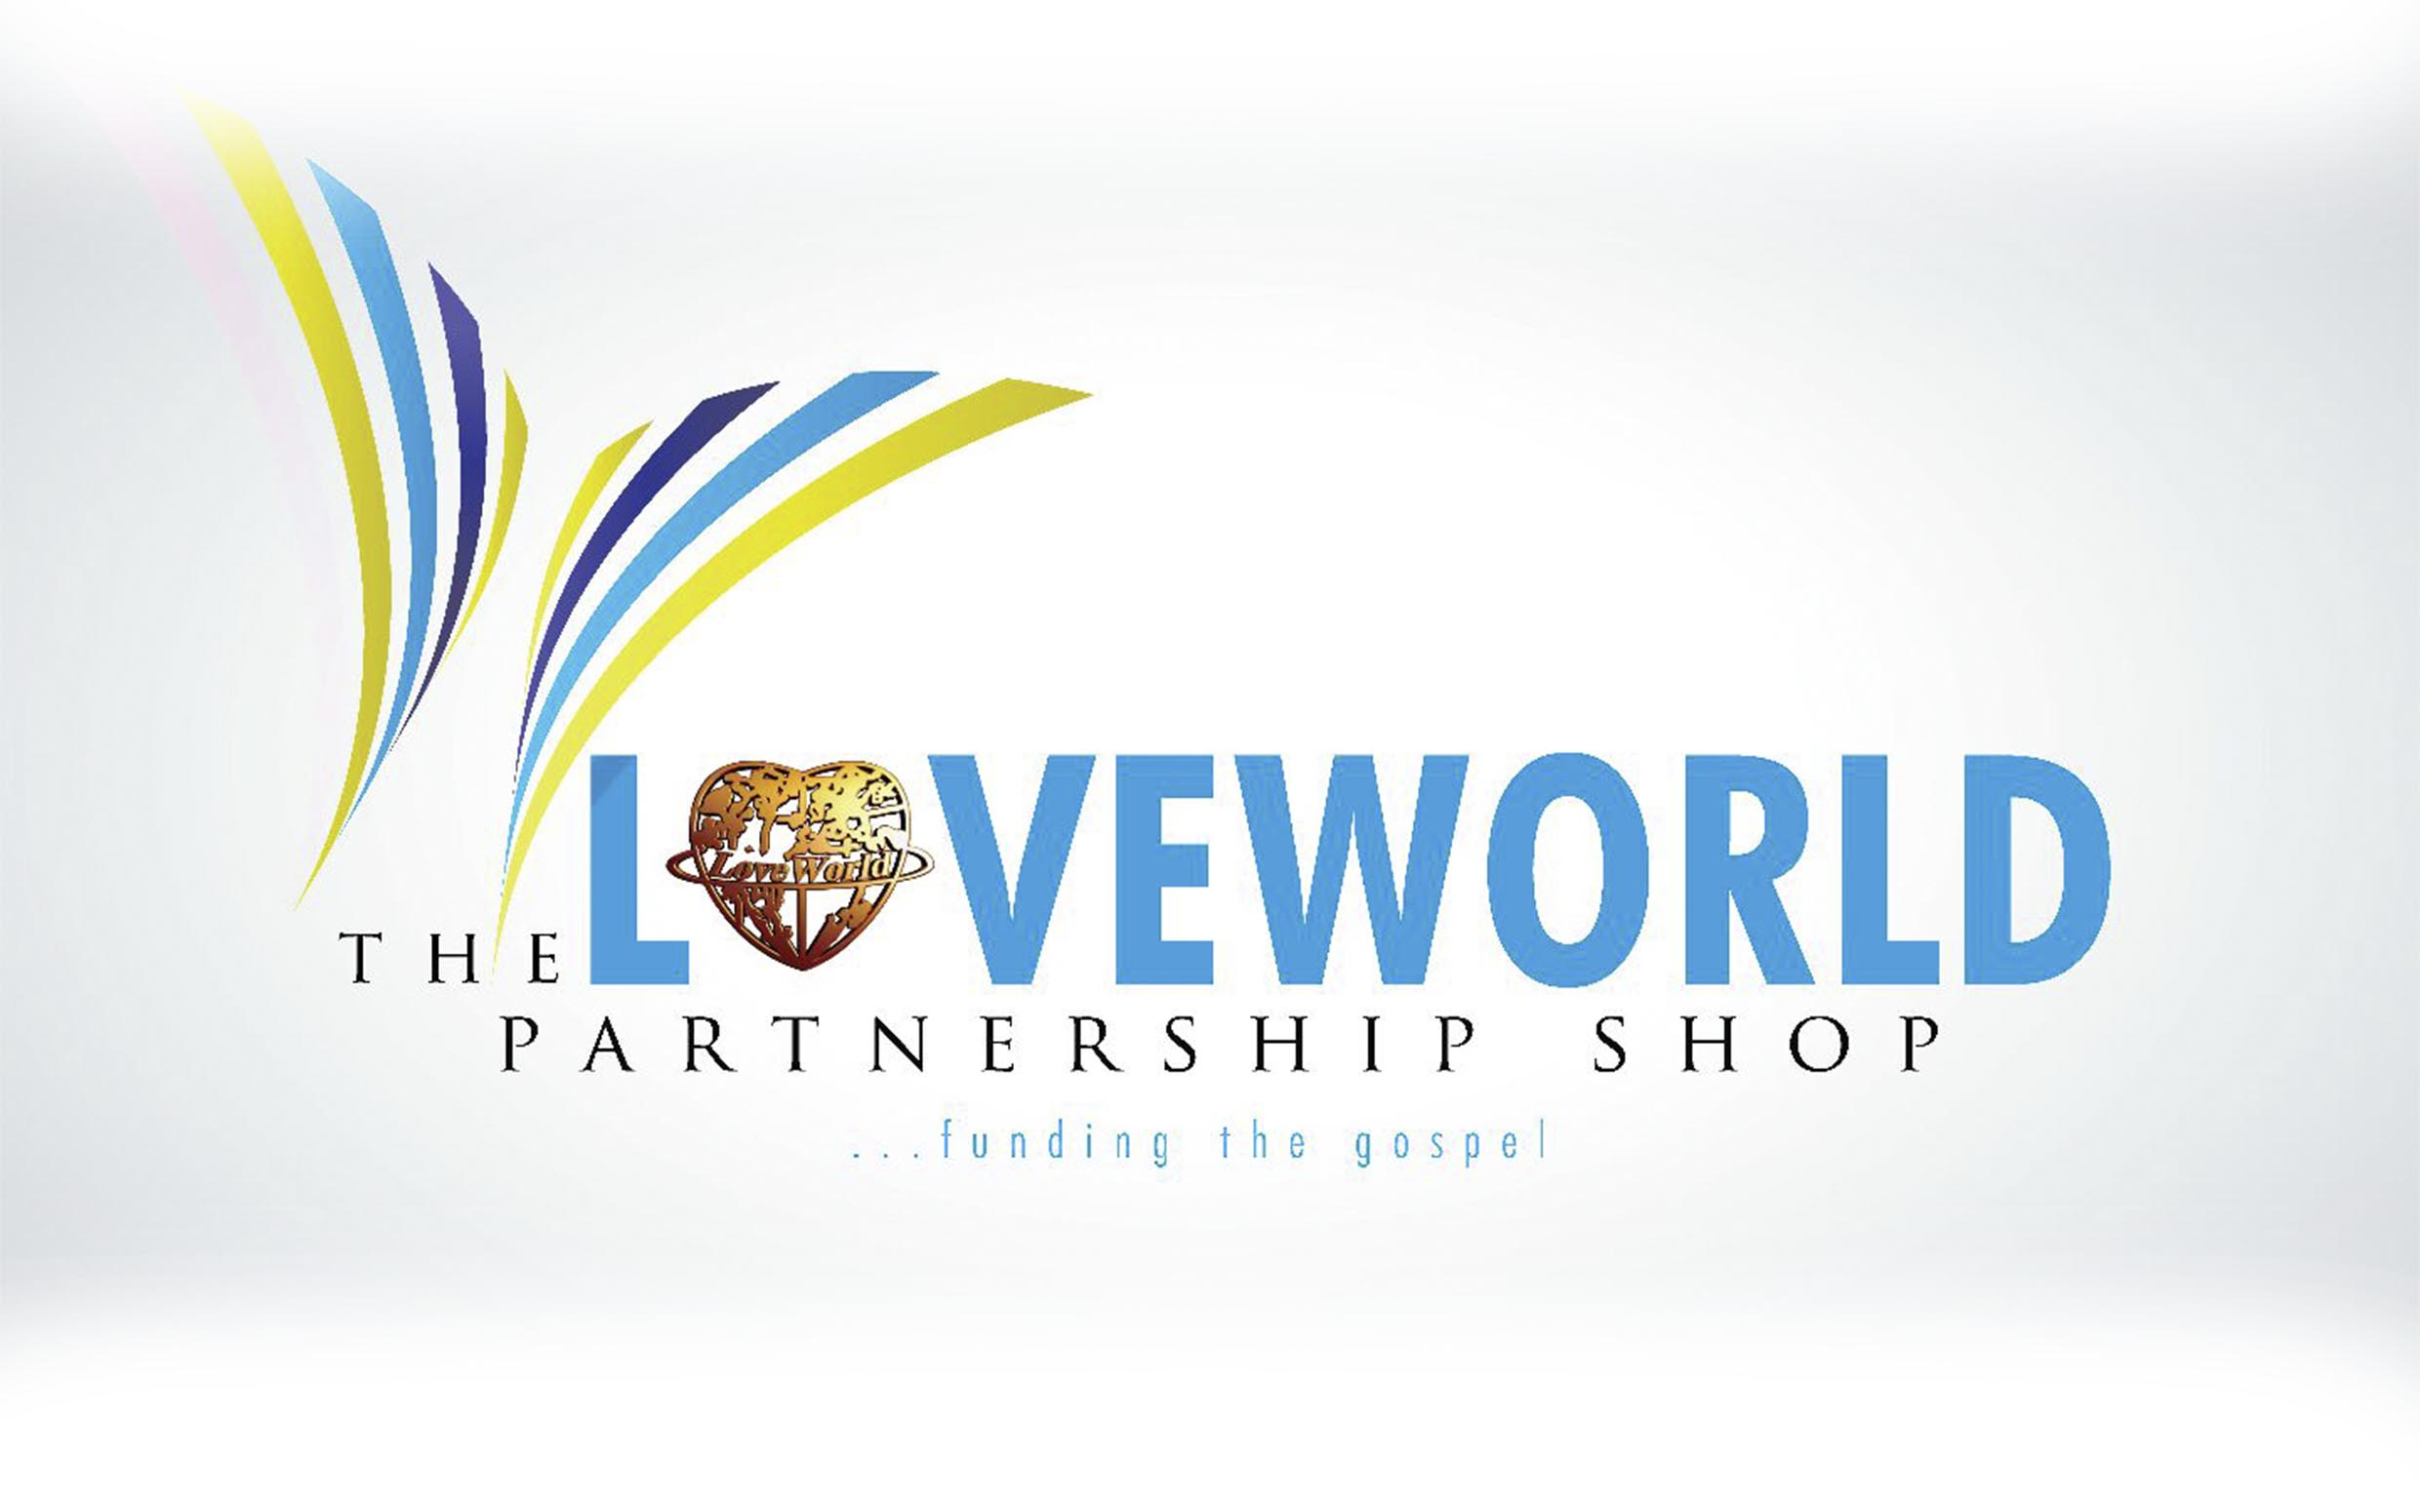 The Partnership Shop avatar picture